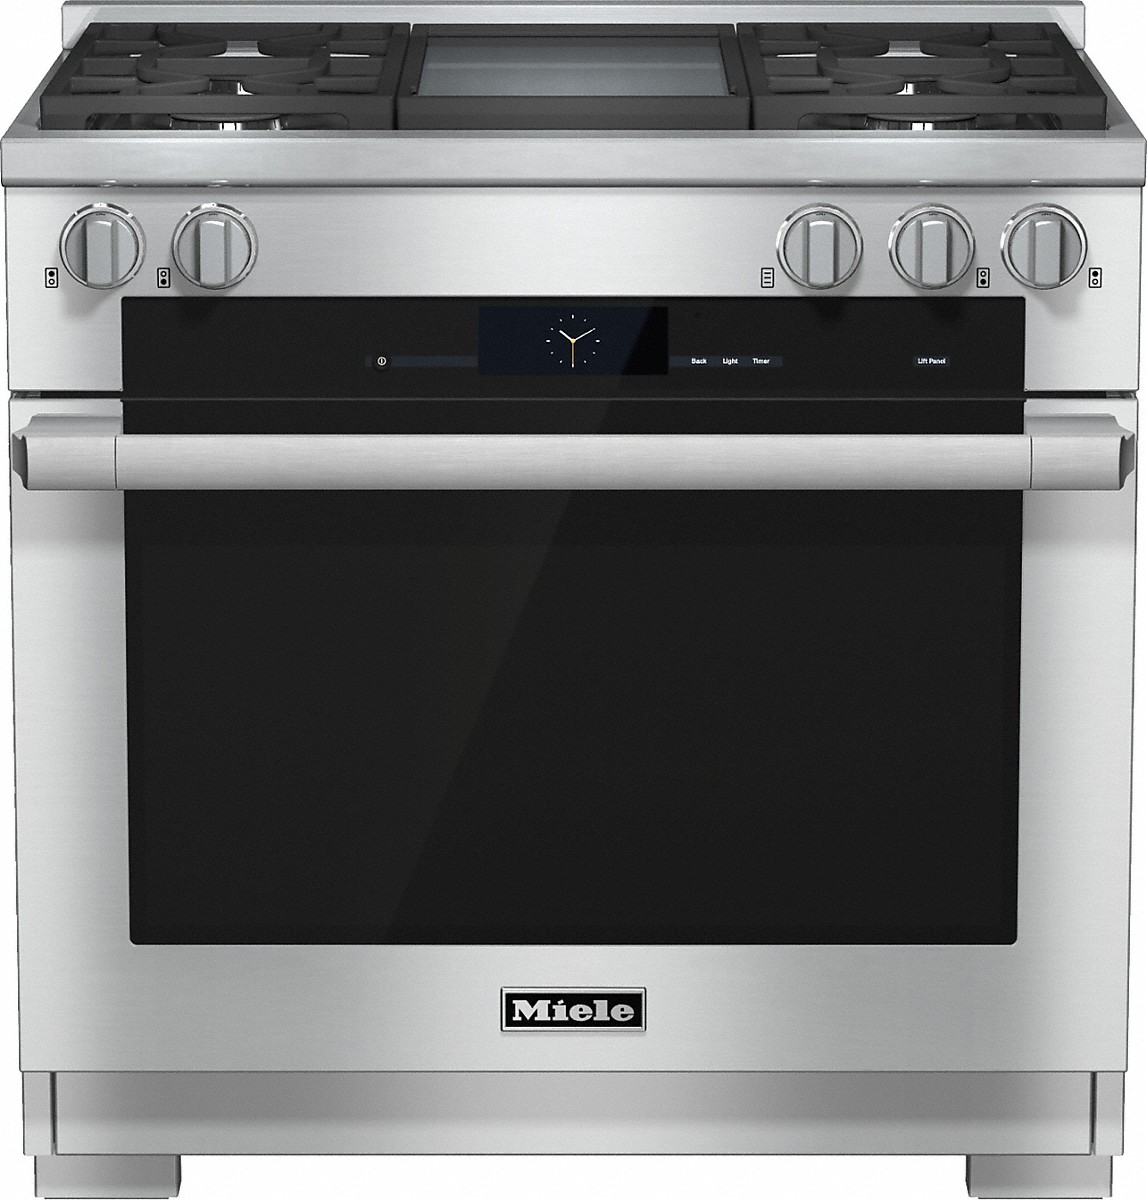 Model: 25193651USA | 36 inch rangeDual Fuel with M Touch controls, Moisture Plus and M Pro dual stacked burners